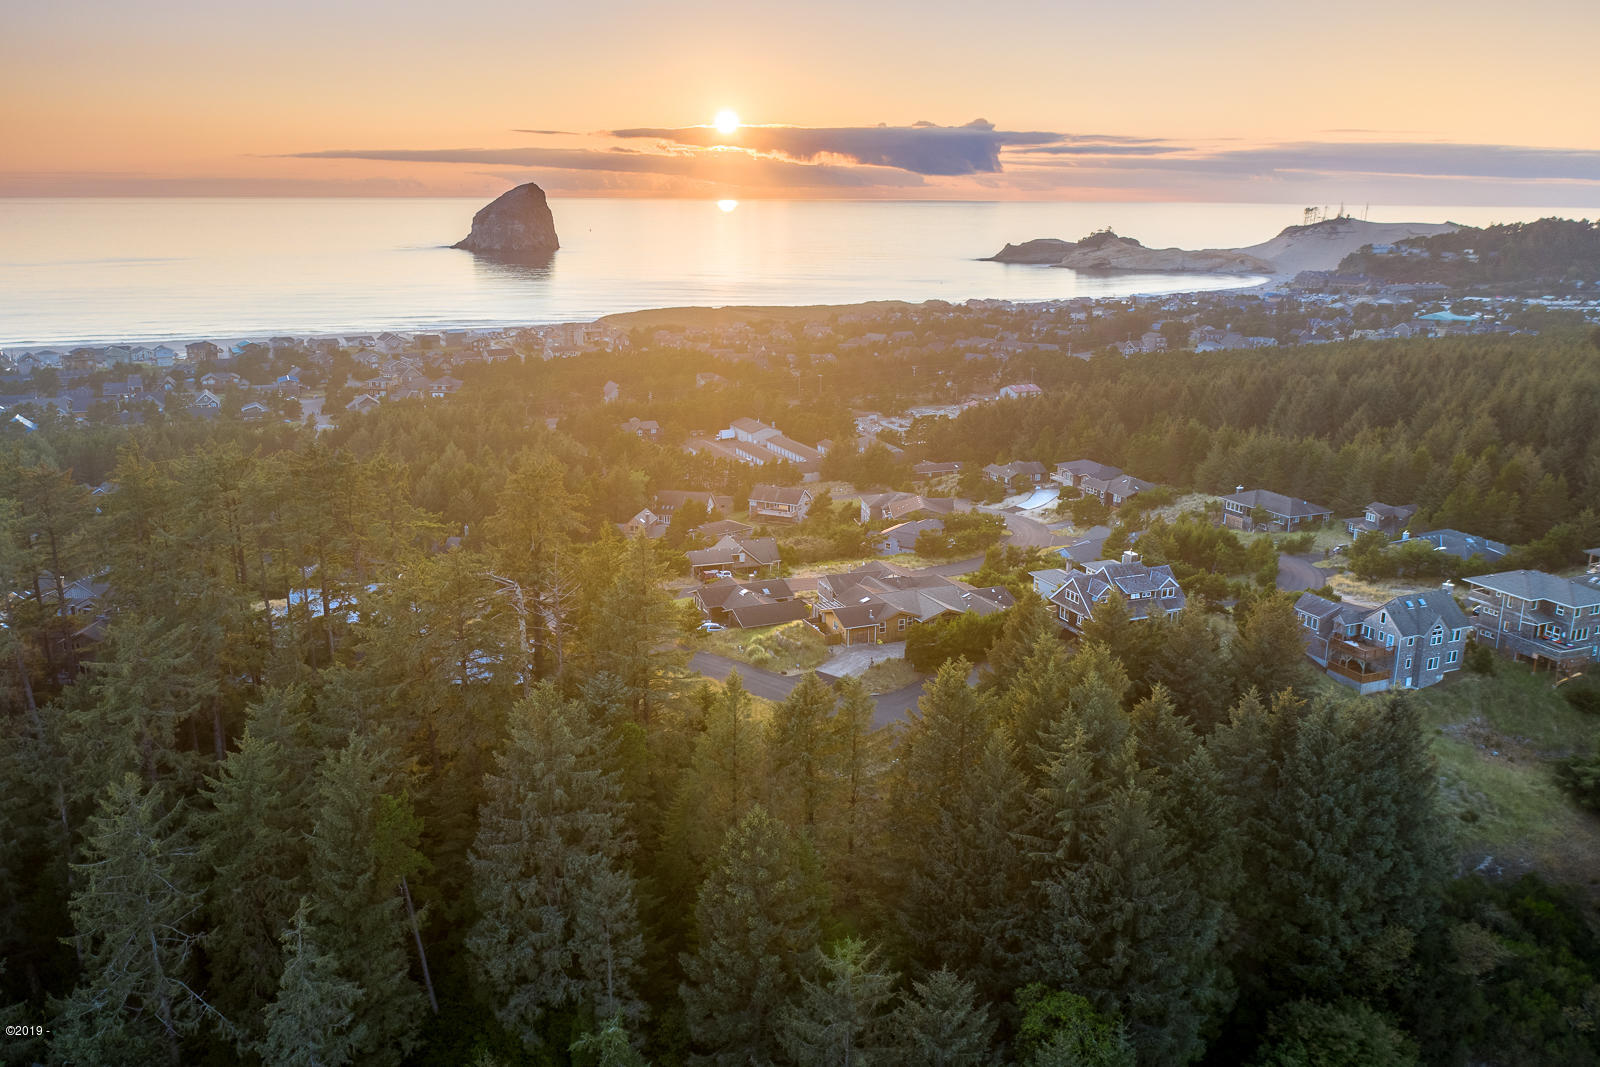 VL 90 Riptide Dr., Pacific City, OR 97135 - Drone shot